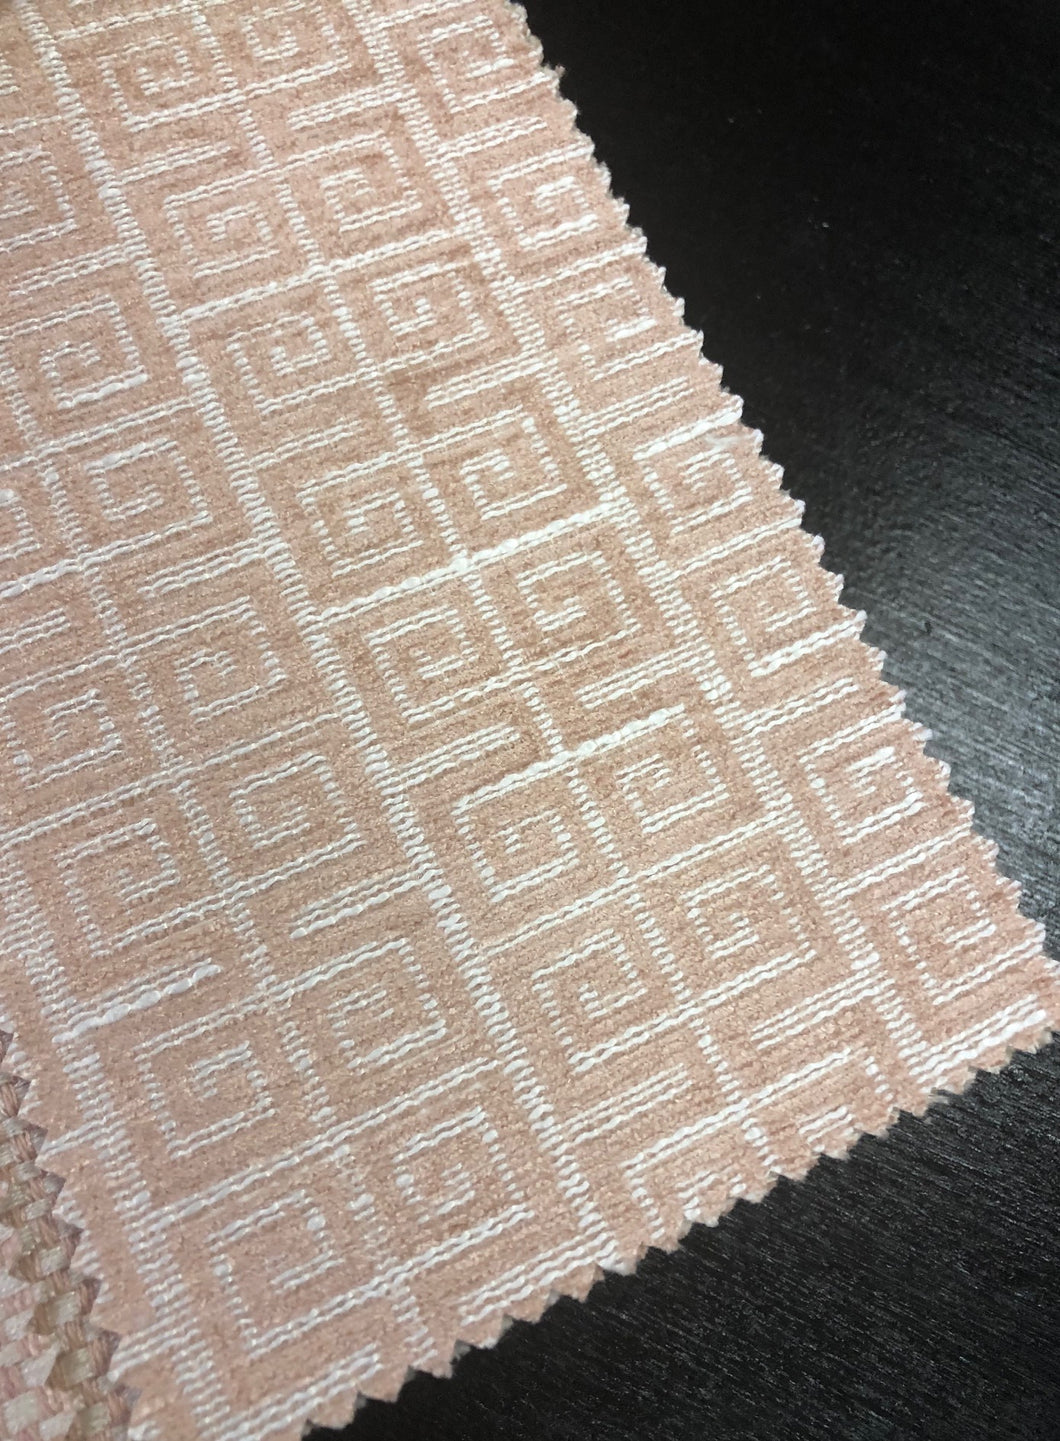 Greek Key Geometric Chenille Upholstery Fabric Blush Off White